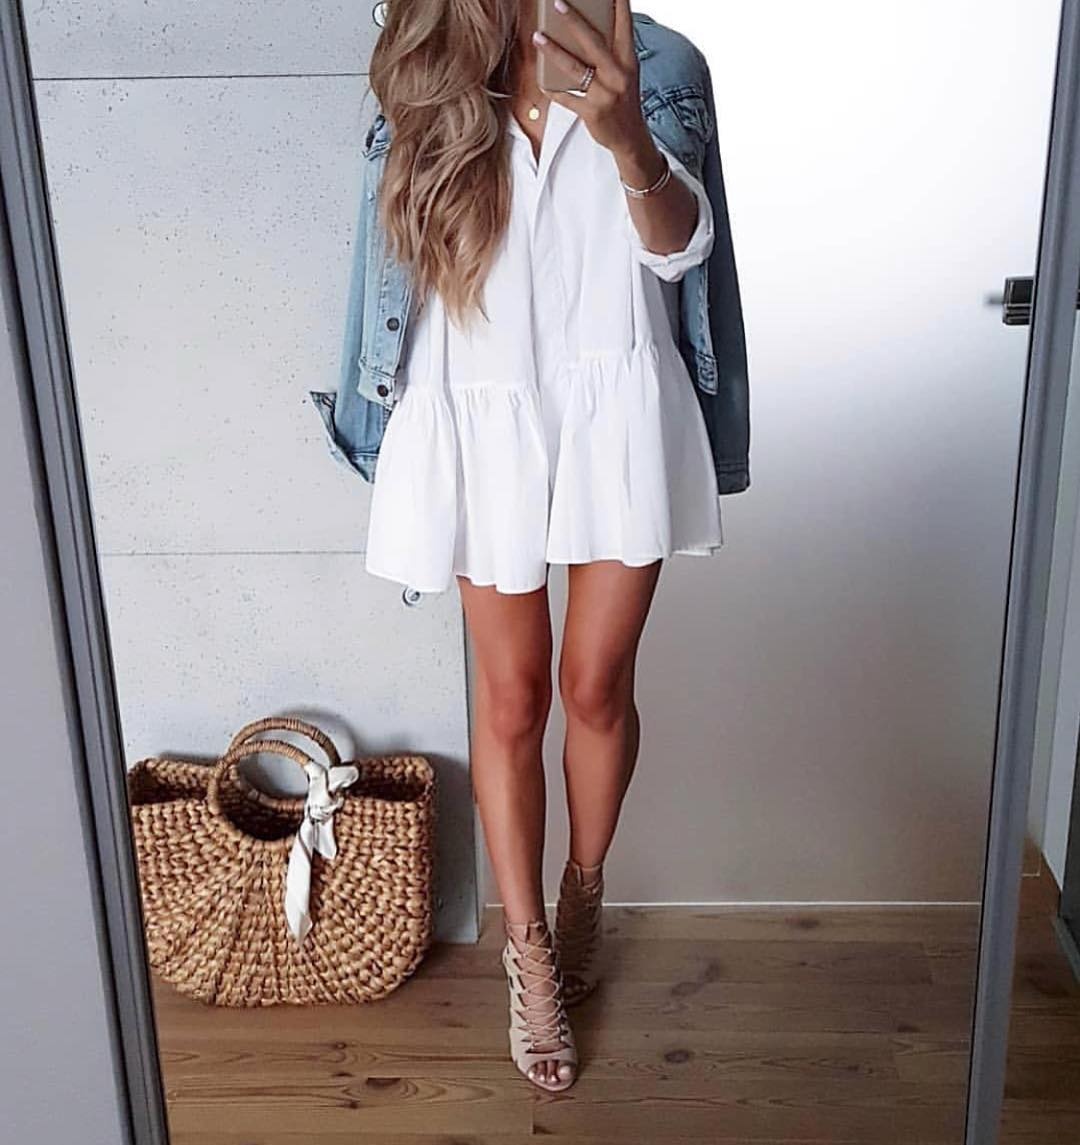 Can I Wear White Dress With Denim Jacket This Summer 2021